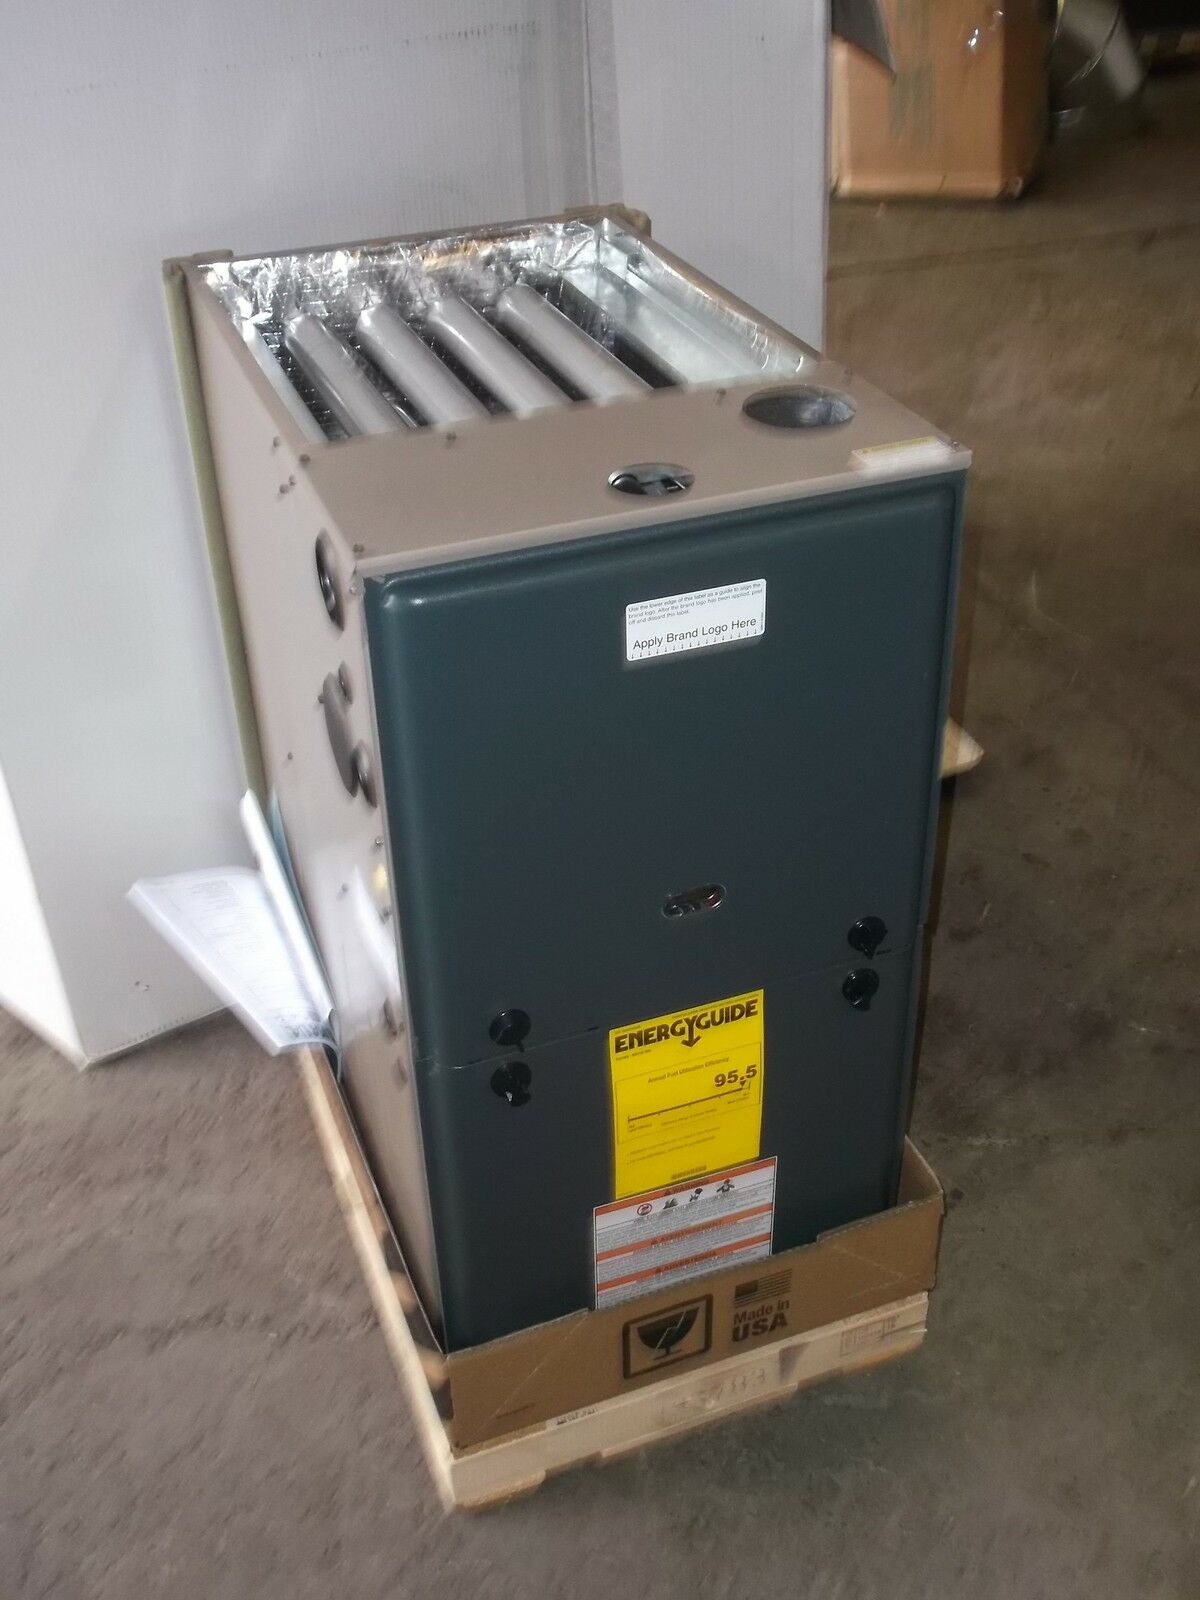 York Evcon 1 Stg Multiposition 100 000 Btu 95 Efficient Gas Furnace Trane American Standard 3 Limit Switch L260 30f C340056p07 Norton Secured Powered By Verisign